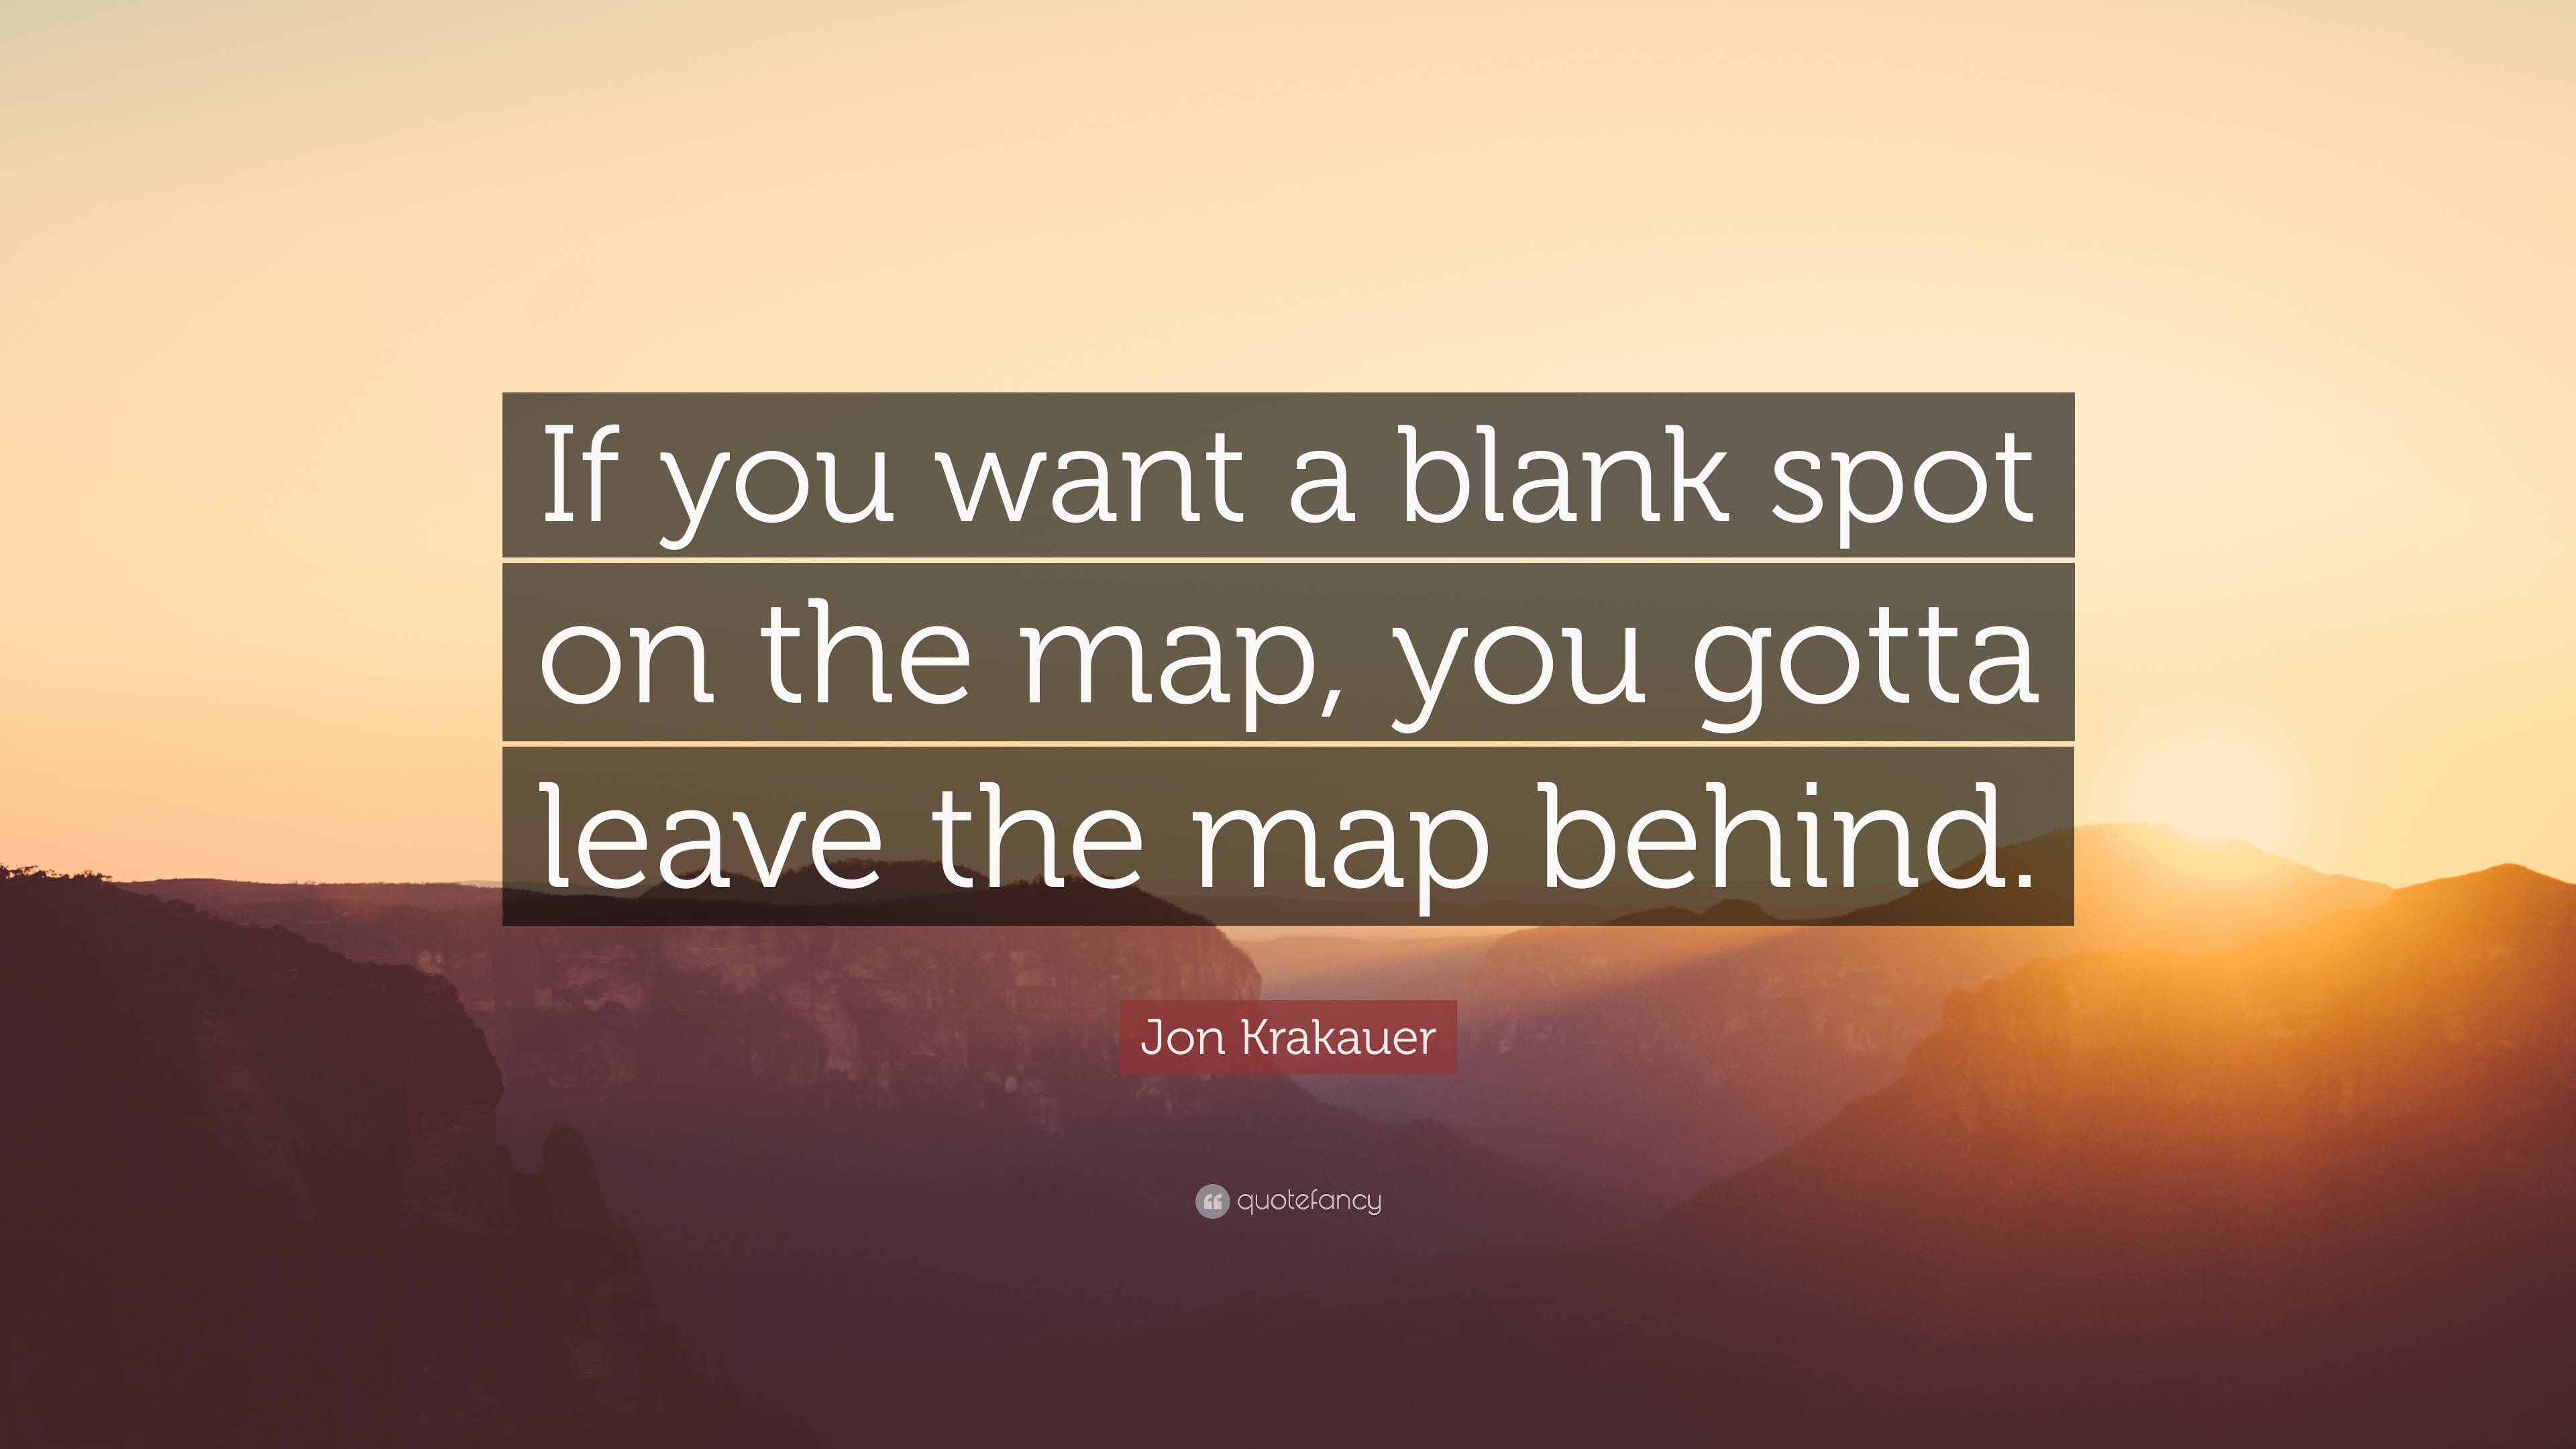 Jon Krakauer Quote If You Want A Blank Spot On The Map You Gotta